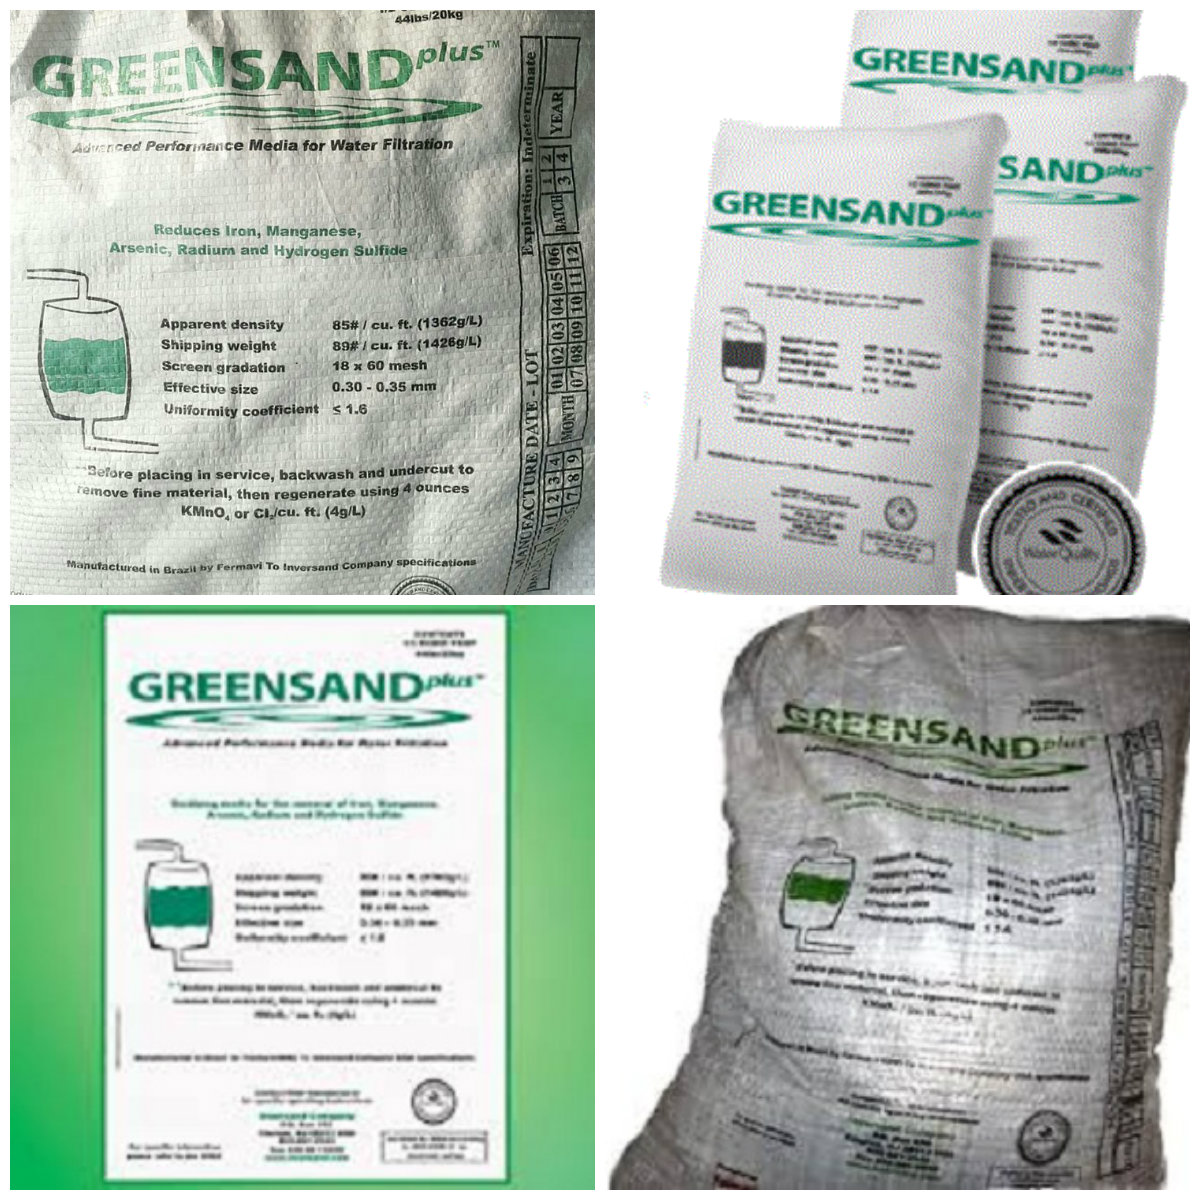 greensand plus